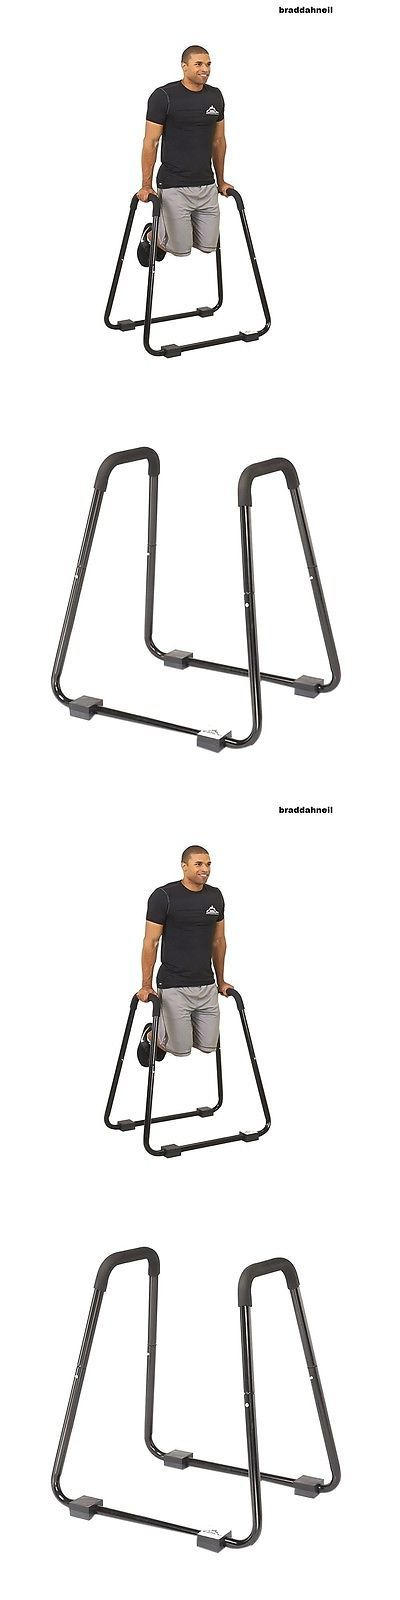 Push Up Stands 158925: Dip Station Bar Exercise Body Up Pull Gym Workout Fitness Tricep Home Raise New -> BUY IT NOW ONLY: $92.95 on eBay!